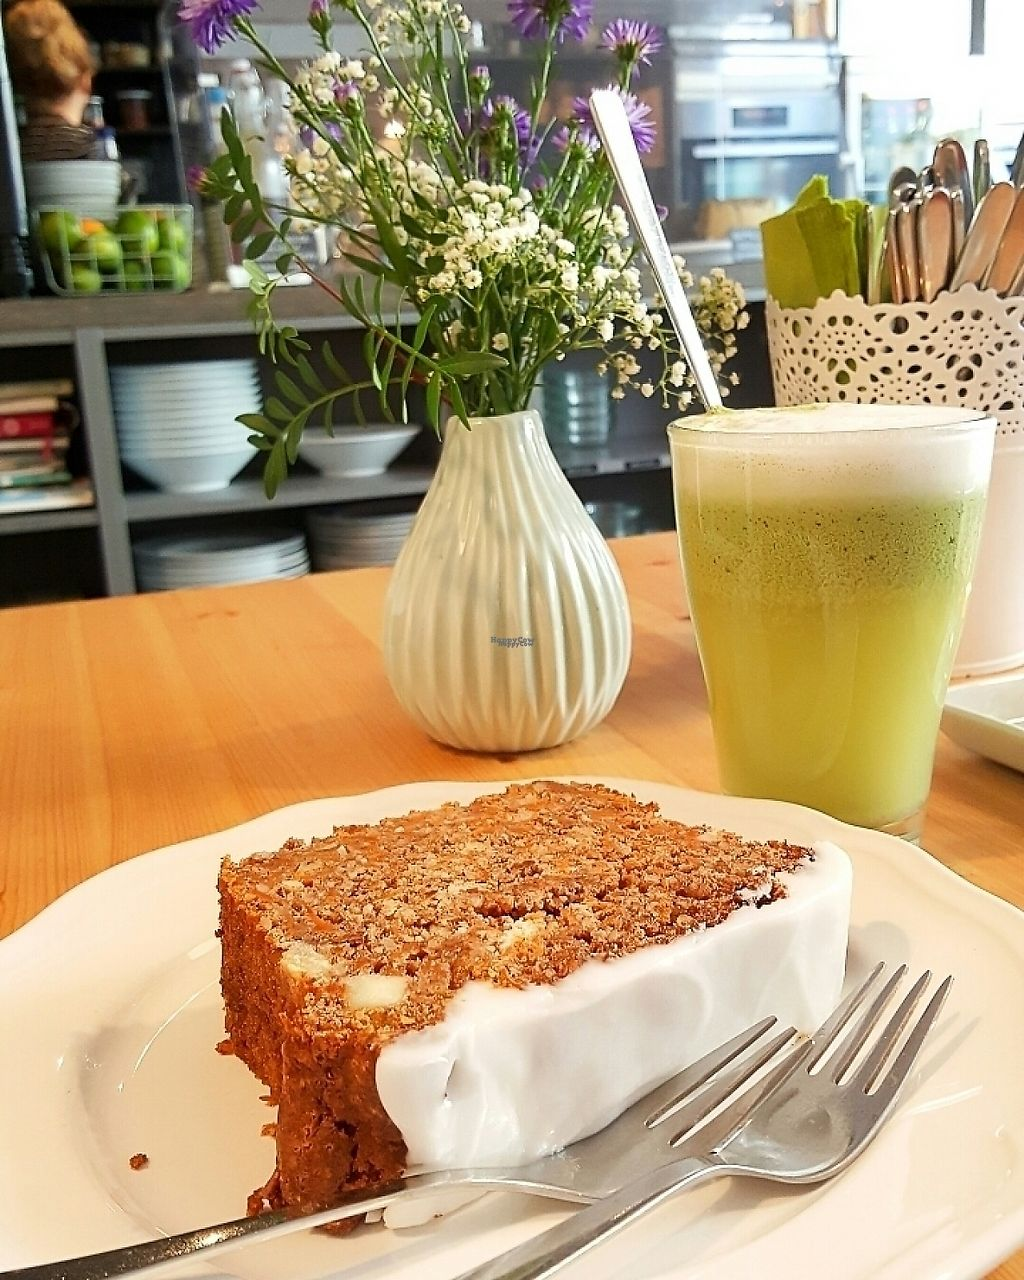 """Photo of HappenPappen  by <a href=""""/members/profile/veganverayo"""">veganverayo</a> <br/>We loved this juicy carrot cake! <br/> February 18, 2017  - <a href='/contact/abuse/image/41221/227962'>Report</a>"""